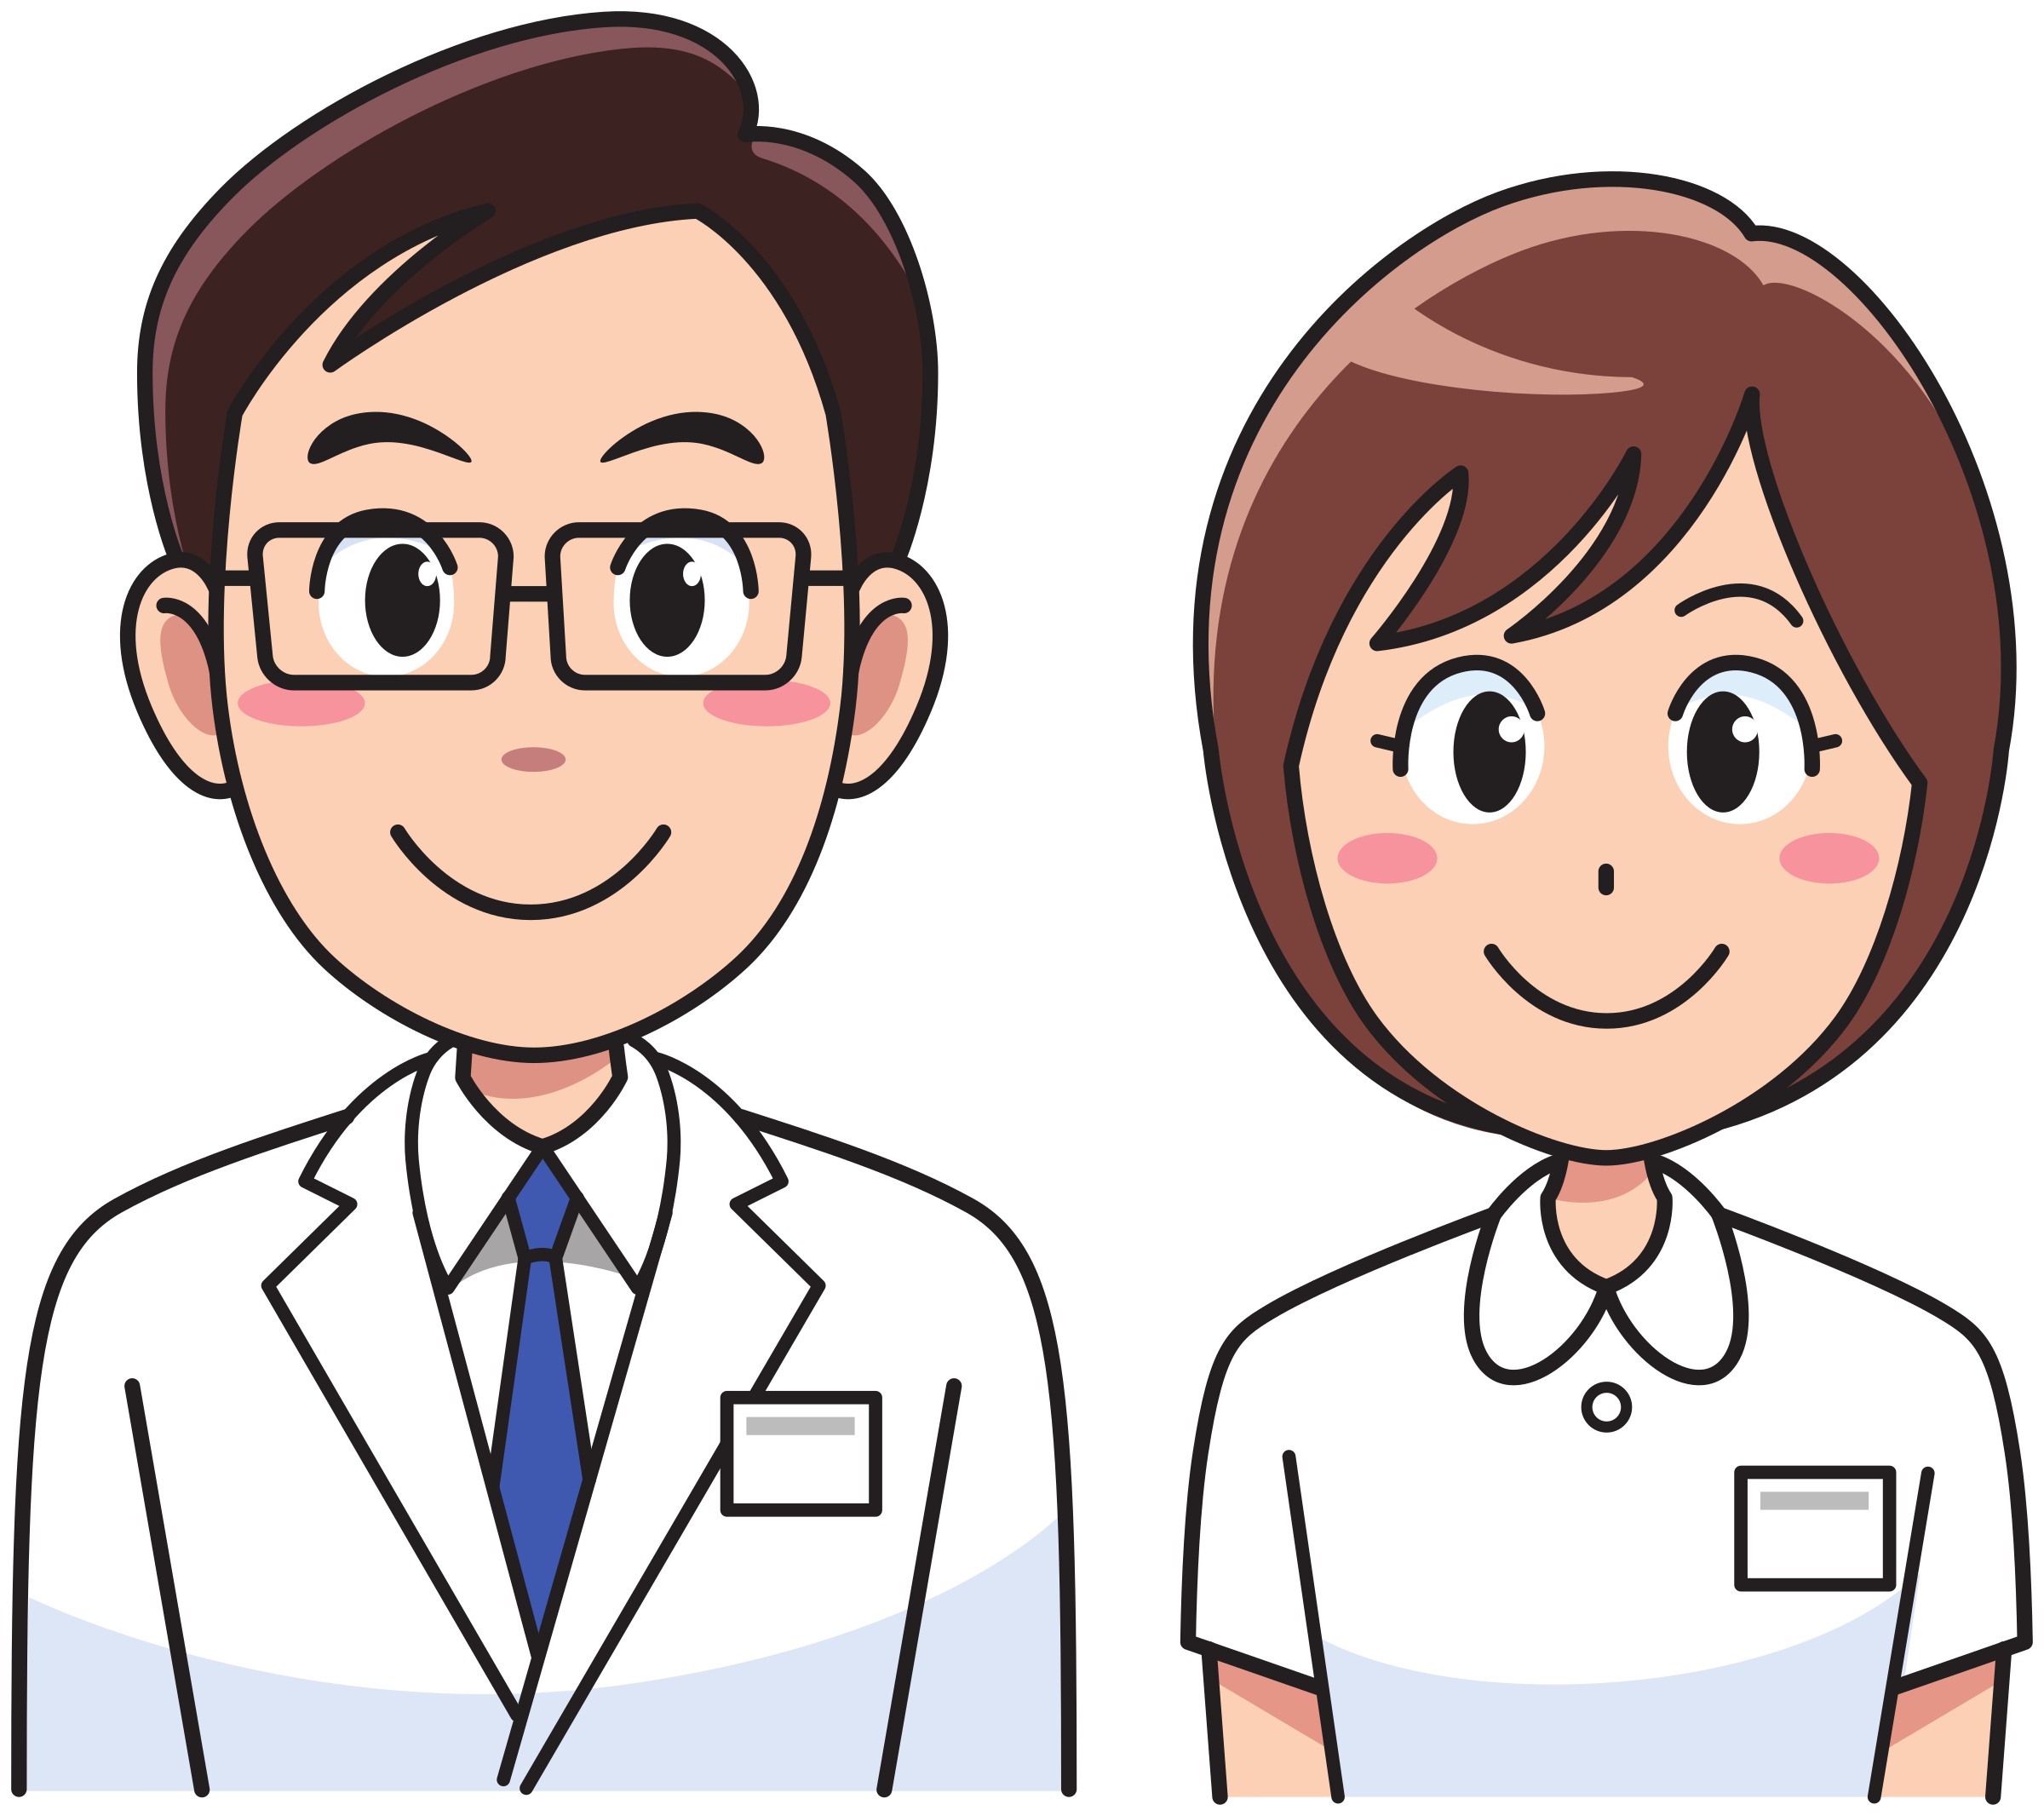 Cartoon doctor png. Medicine and nurse icons